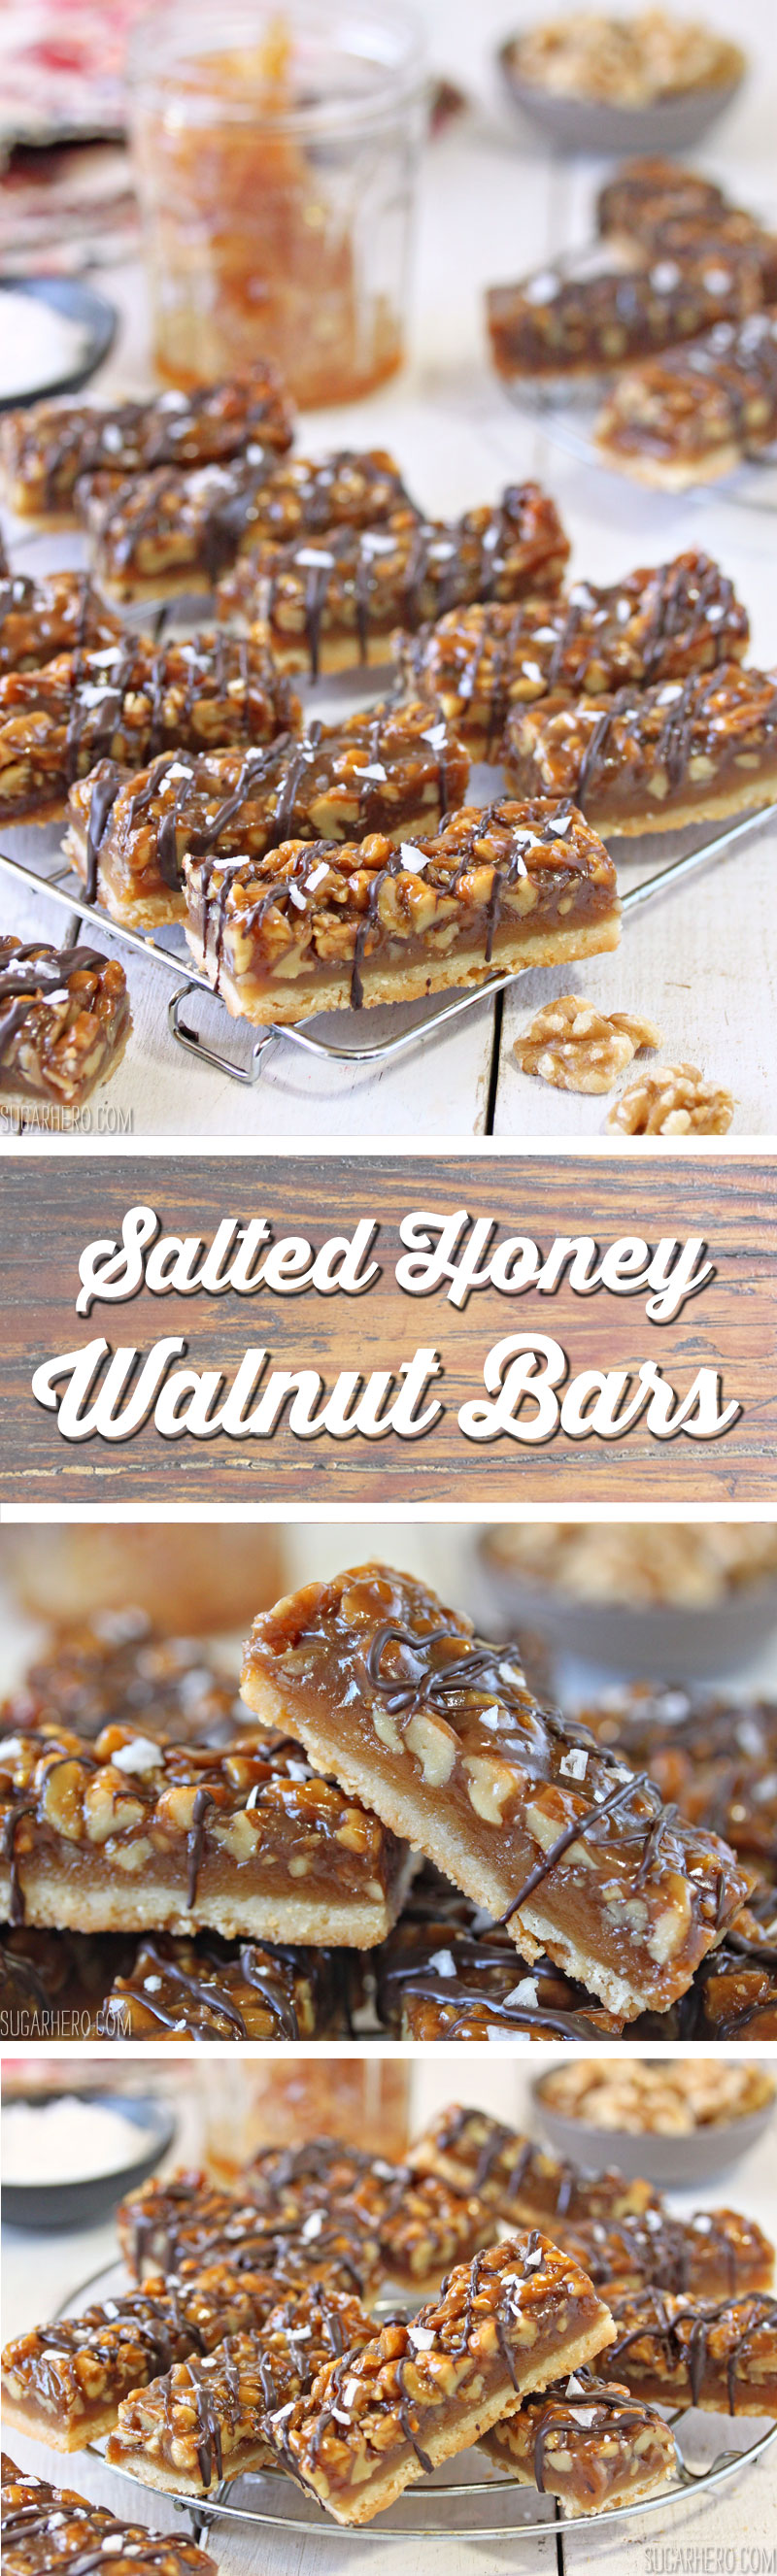 Salted Honey Walnut Bars | From SugarHero.com